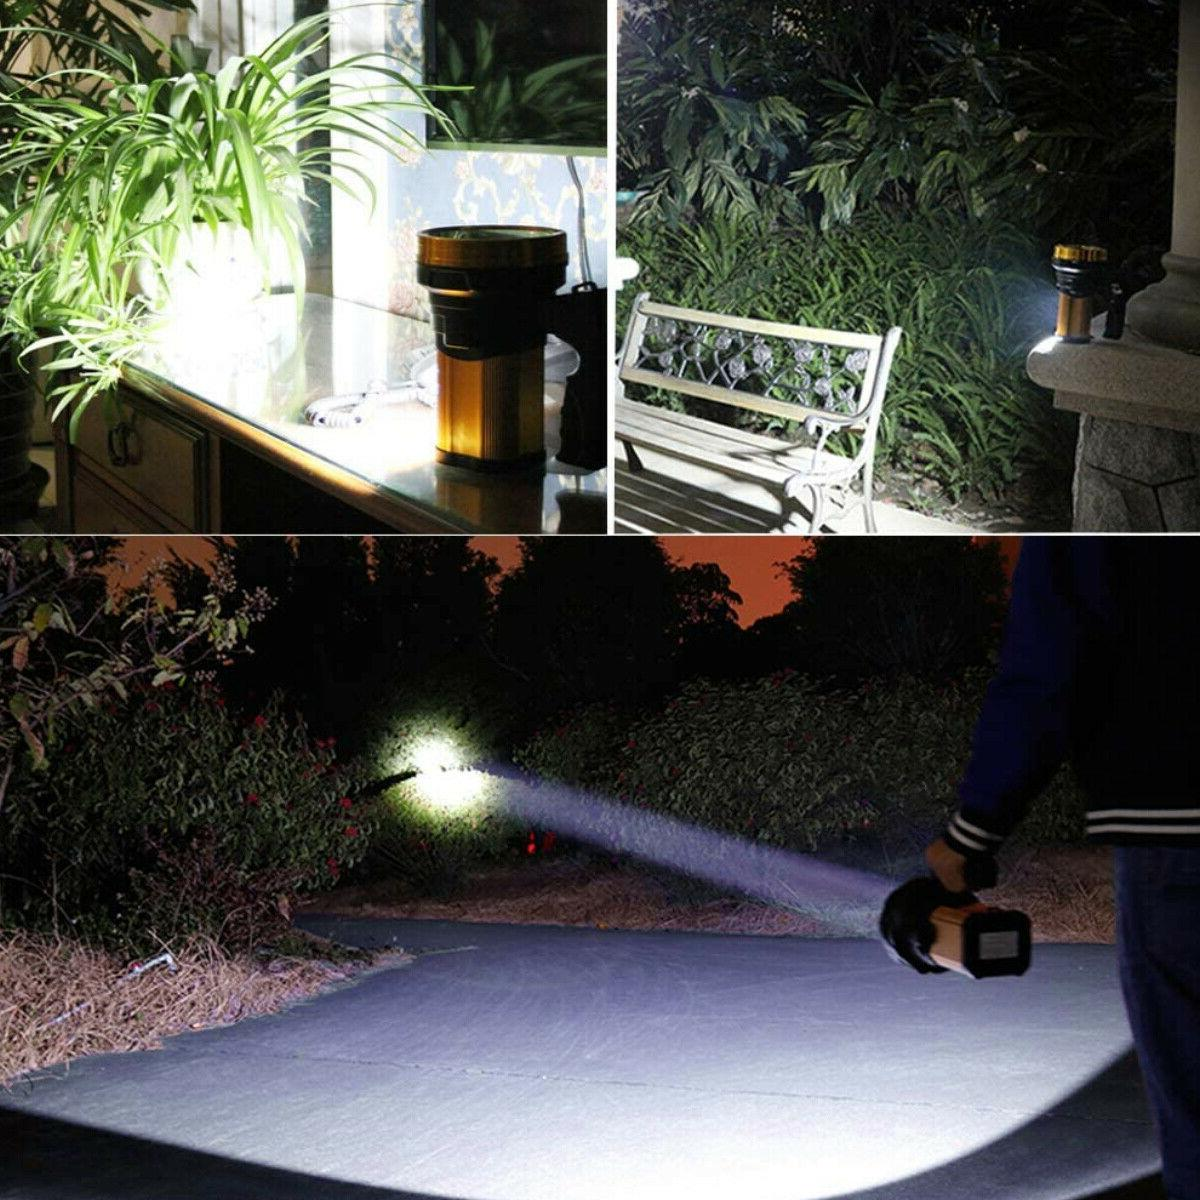 Rechargeable Bright LED Searchlight Handheld Portable Flashlight